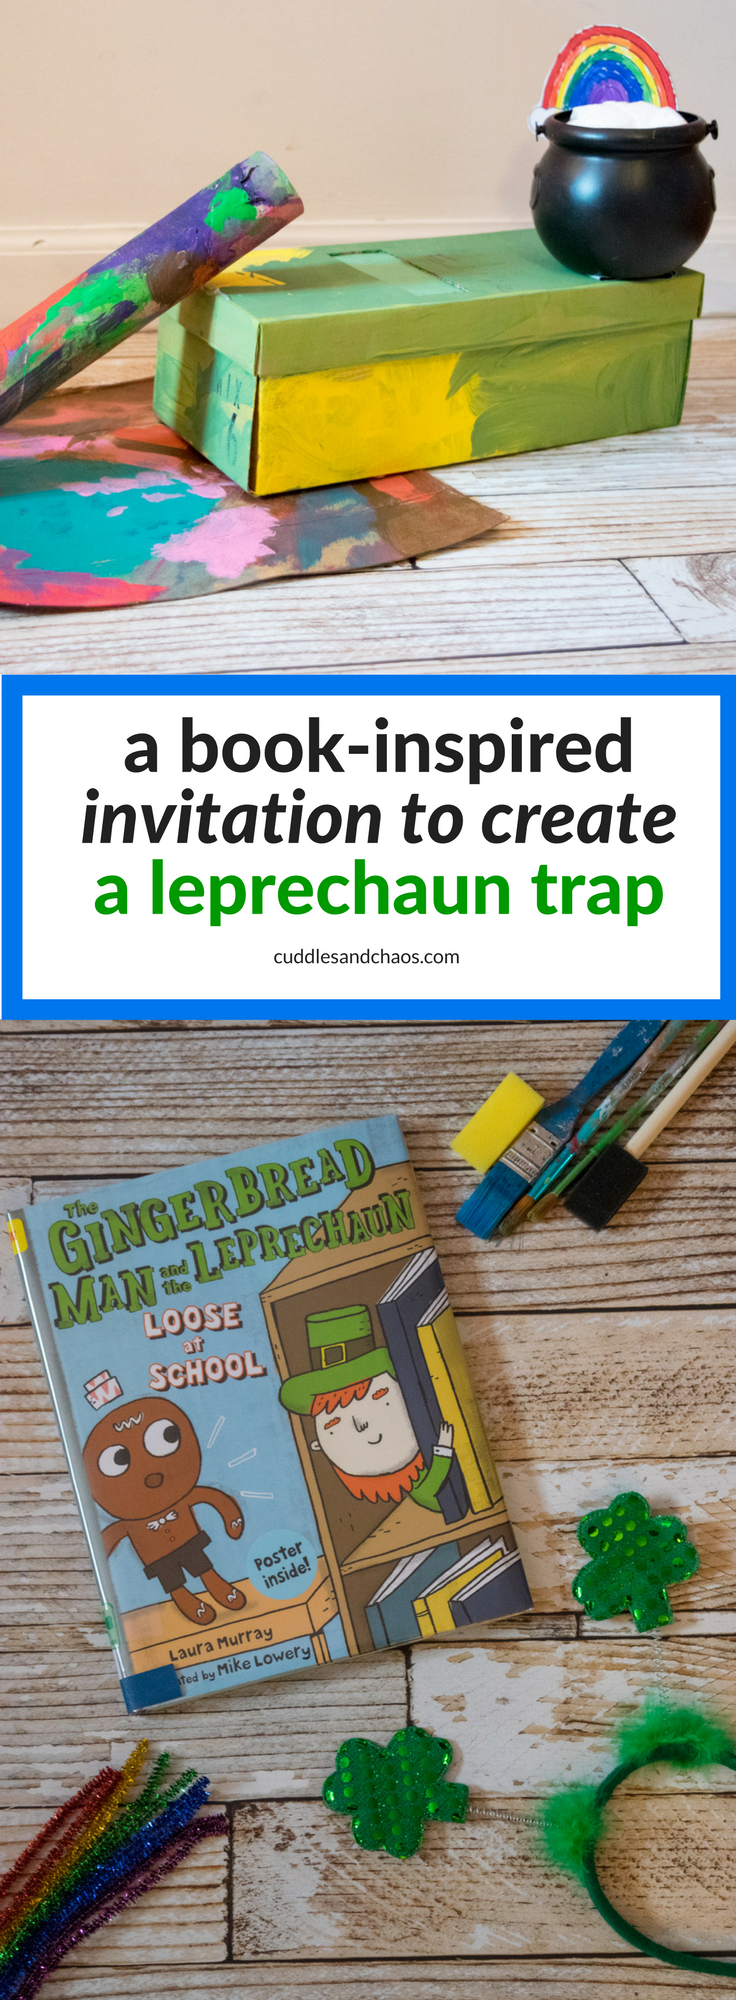 book-inspired invitation to create a leprechaun trap - book and a craft - The Gingerbread Man and the Leprechaun Loose at School - St. Patrick's Day